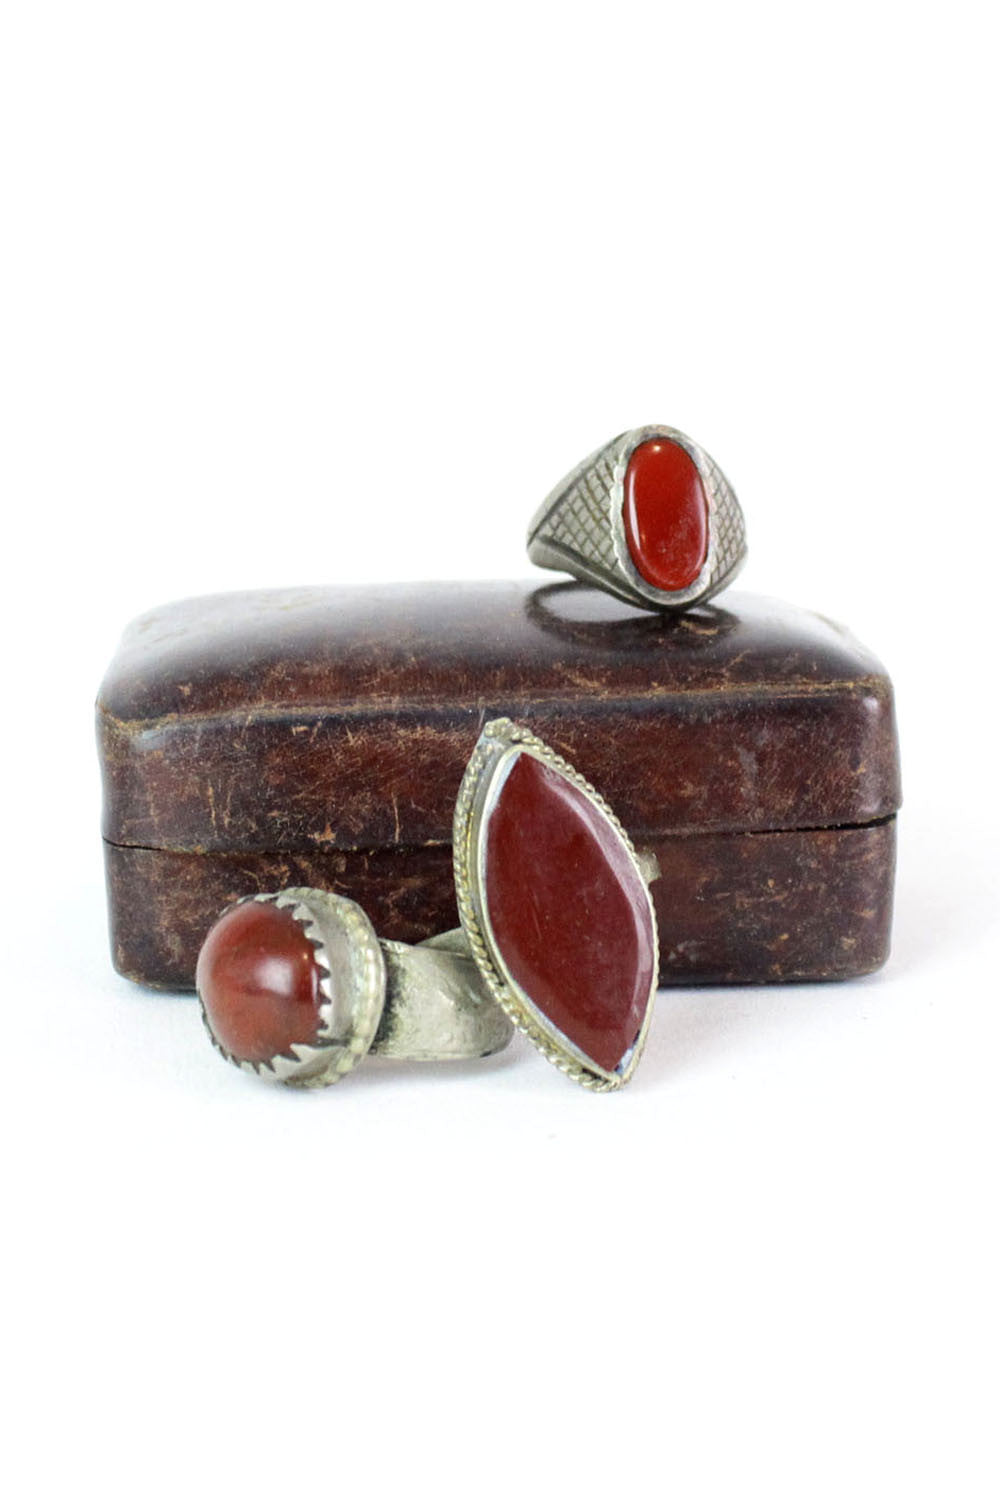 Carnelian Point Ring